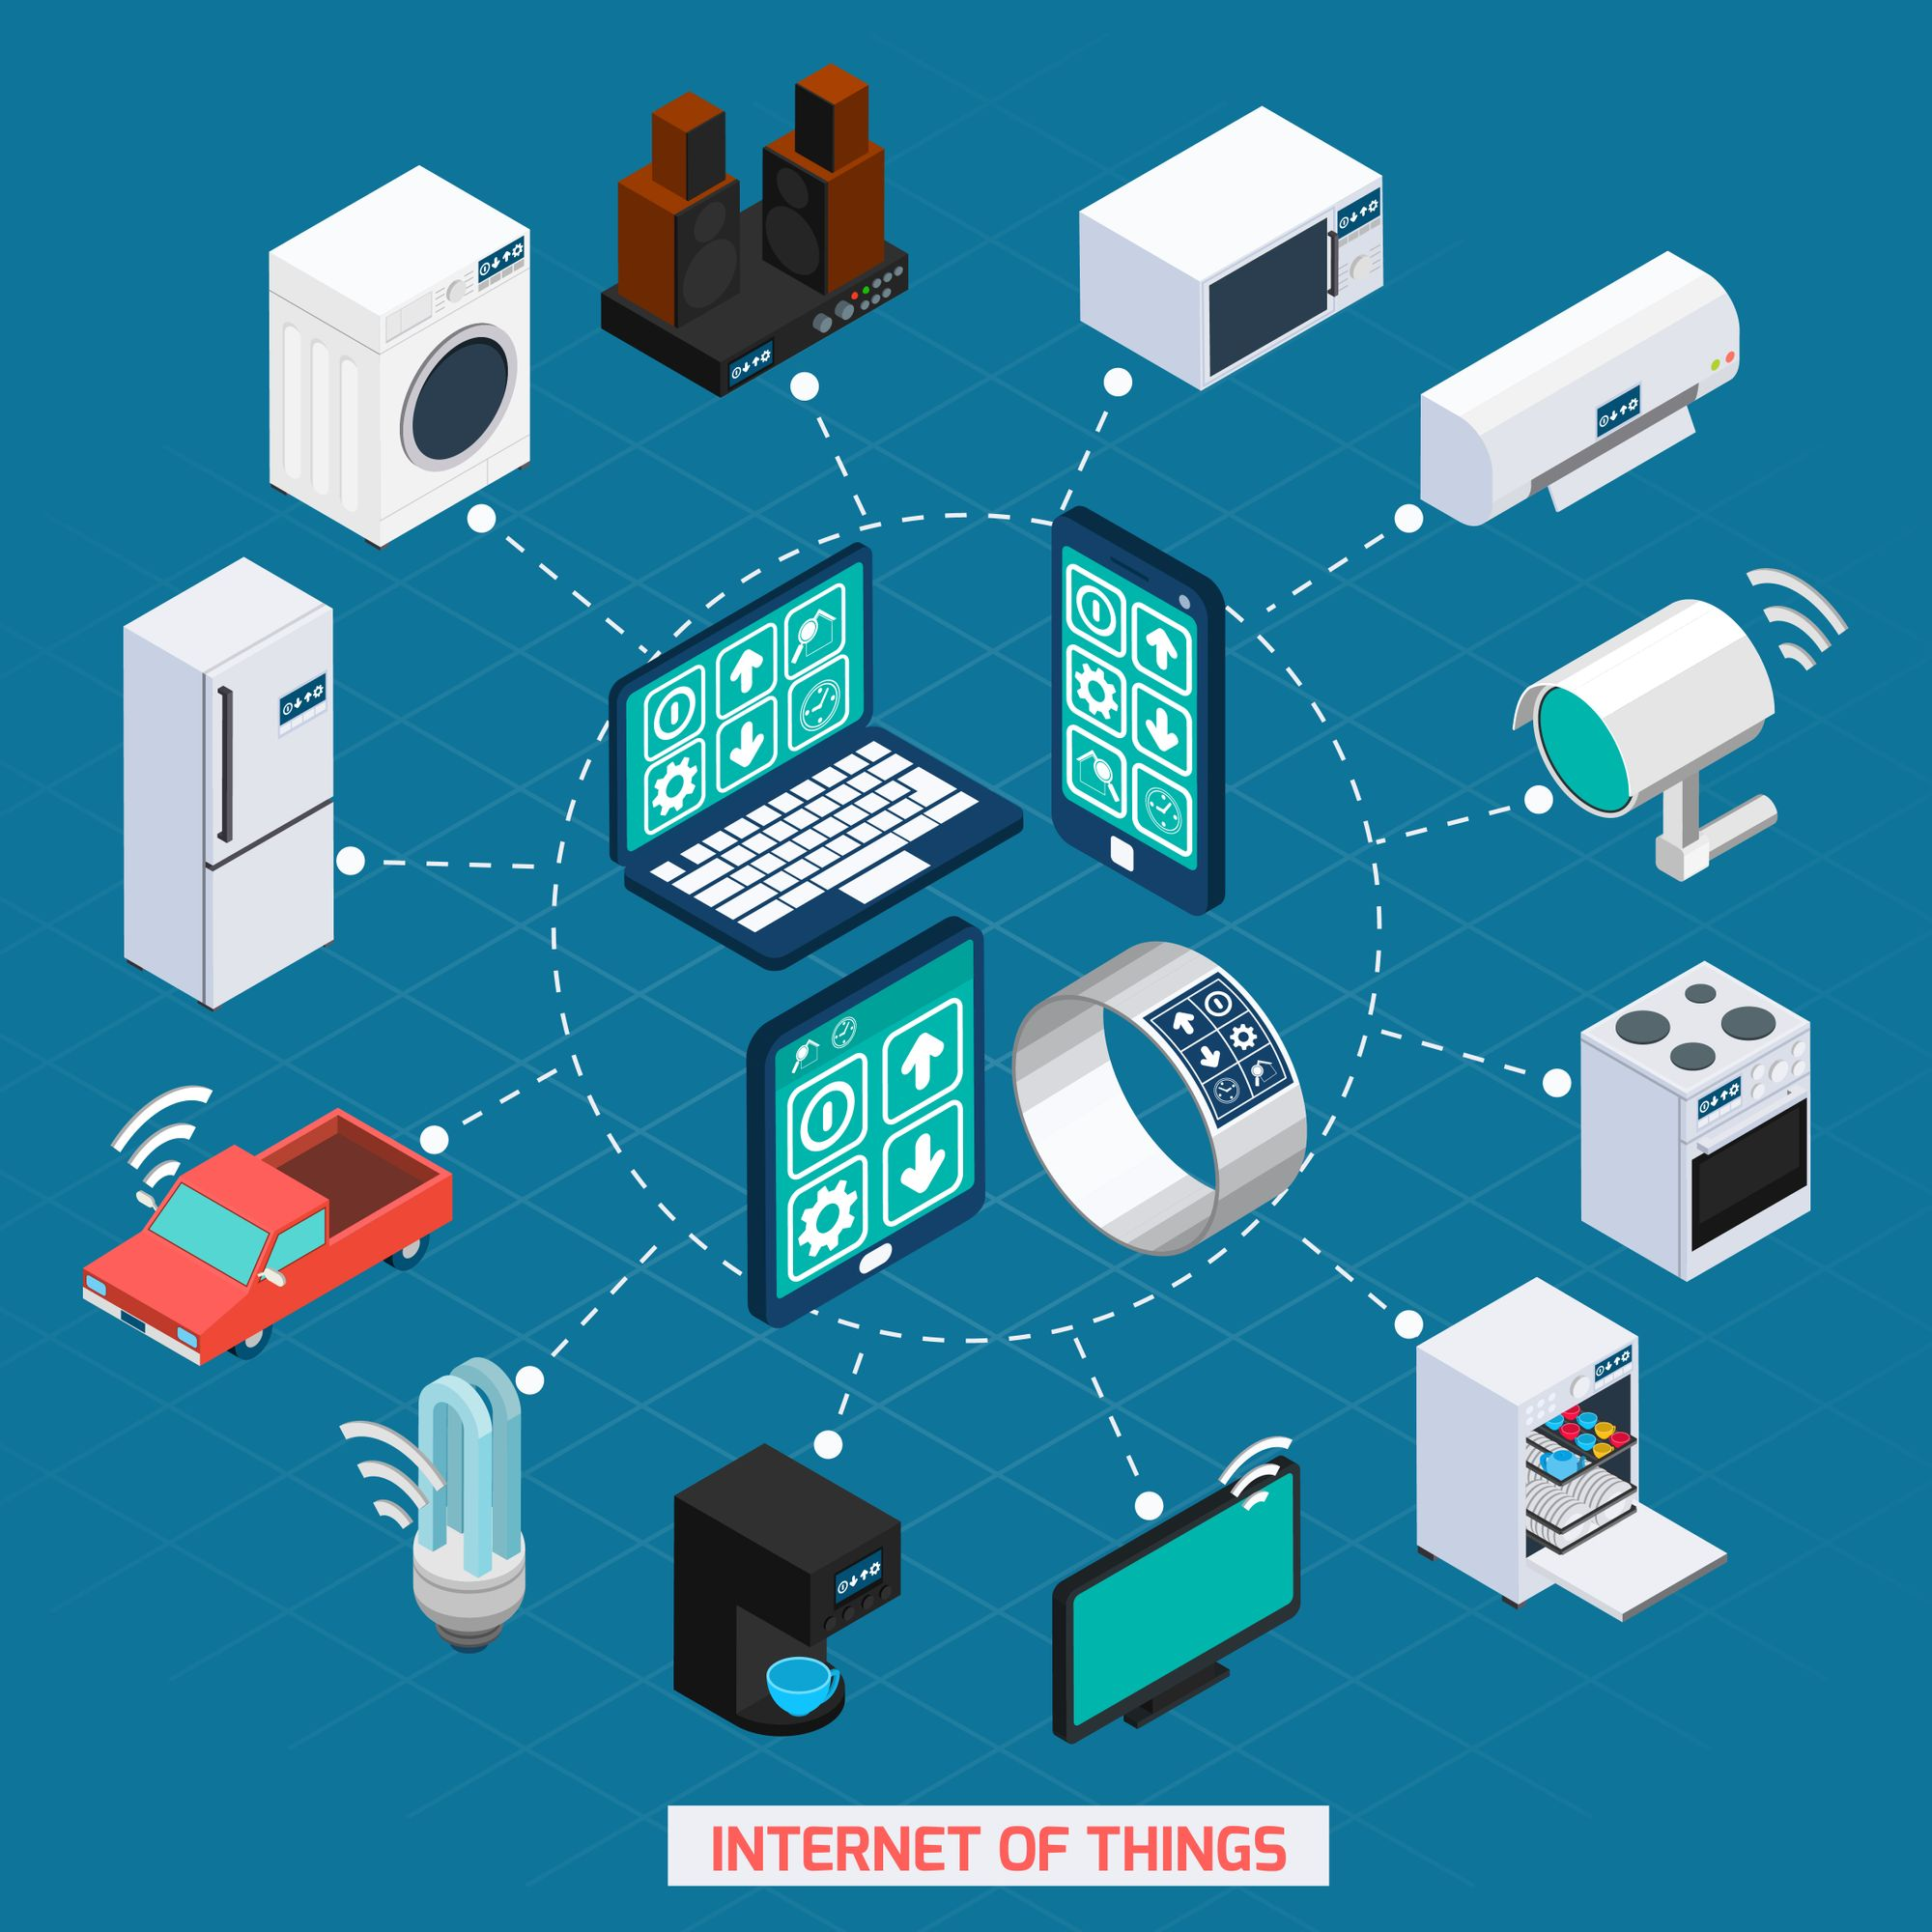 Future of IOT and career opportunities